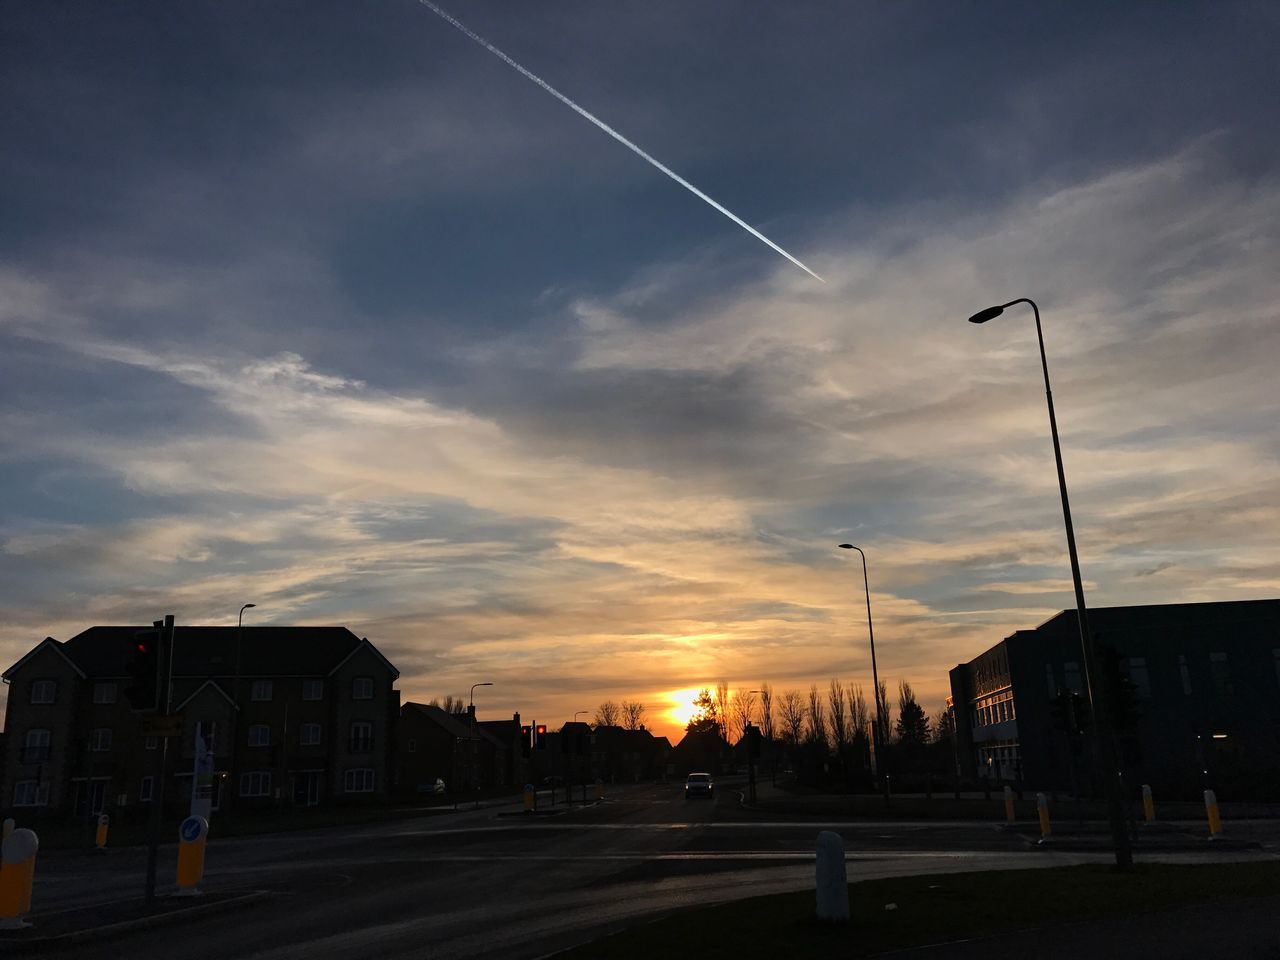 sunset, sky, built structure, street light, building exterior, cloud - sky, outdoors, architecture, vapor trail, no people, road, contrail, nature, city, day